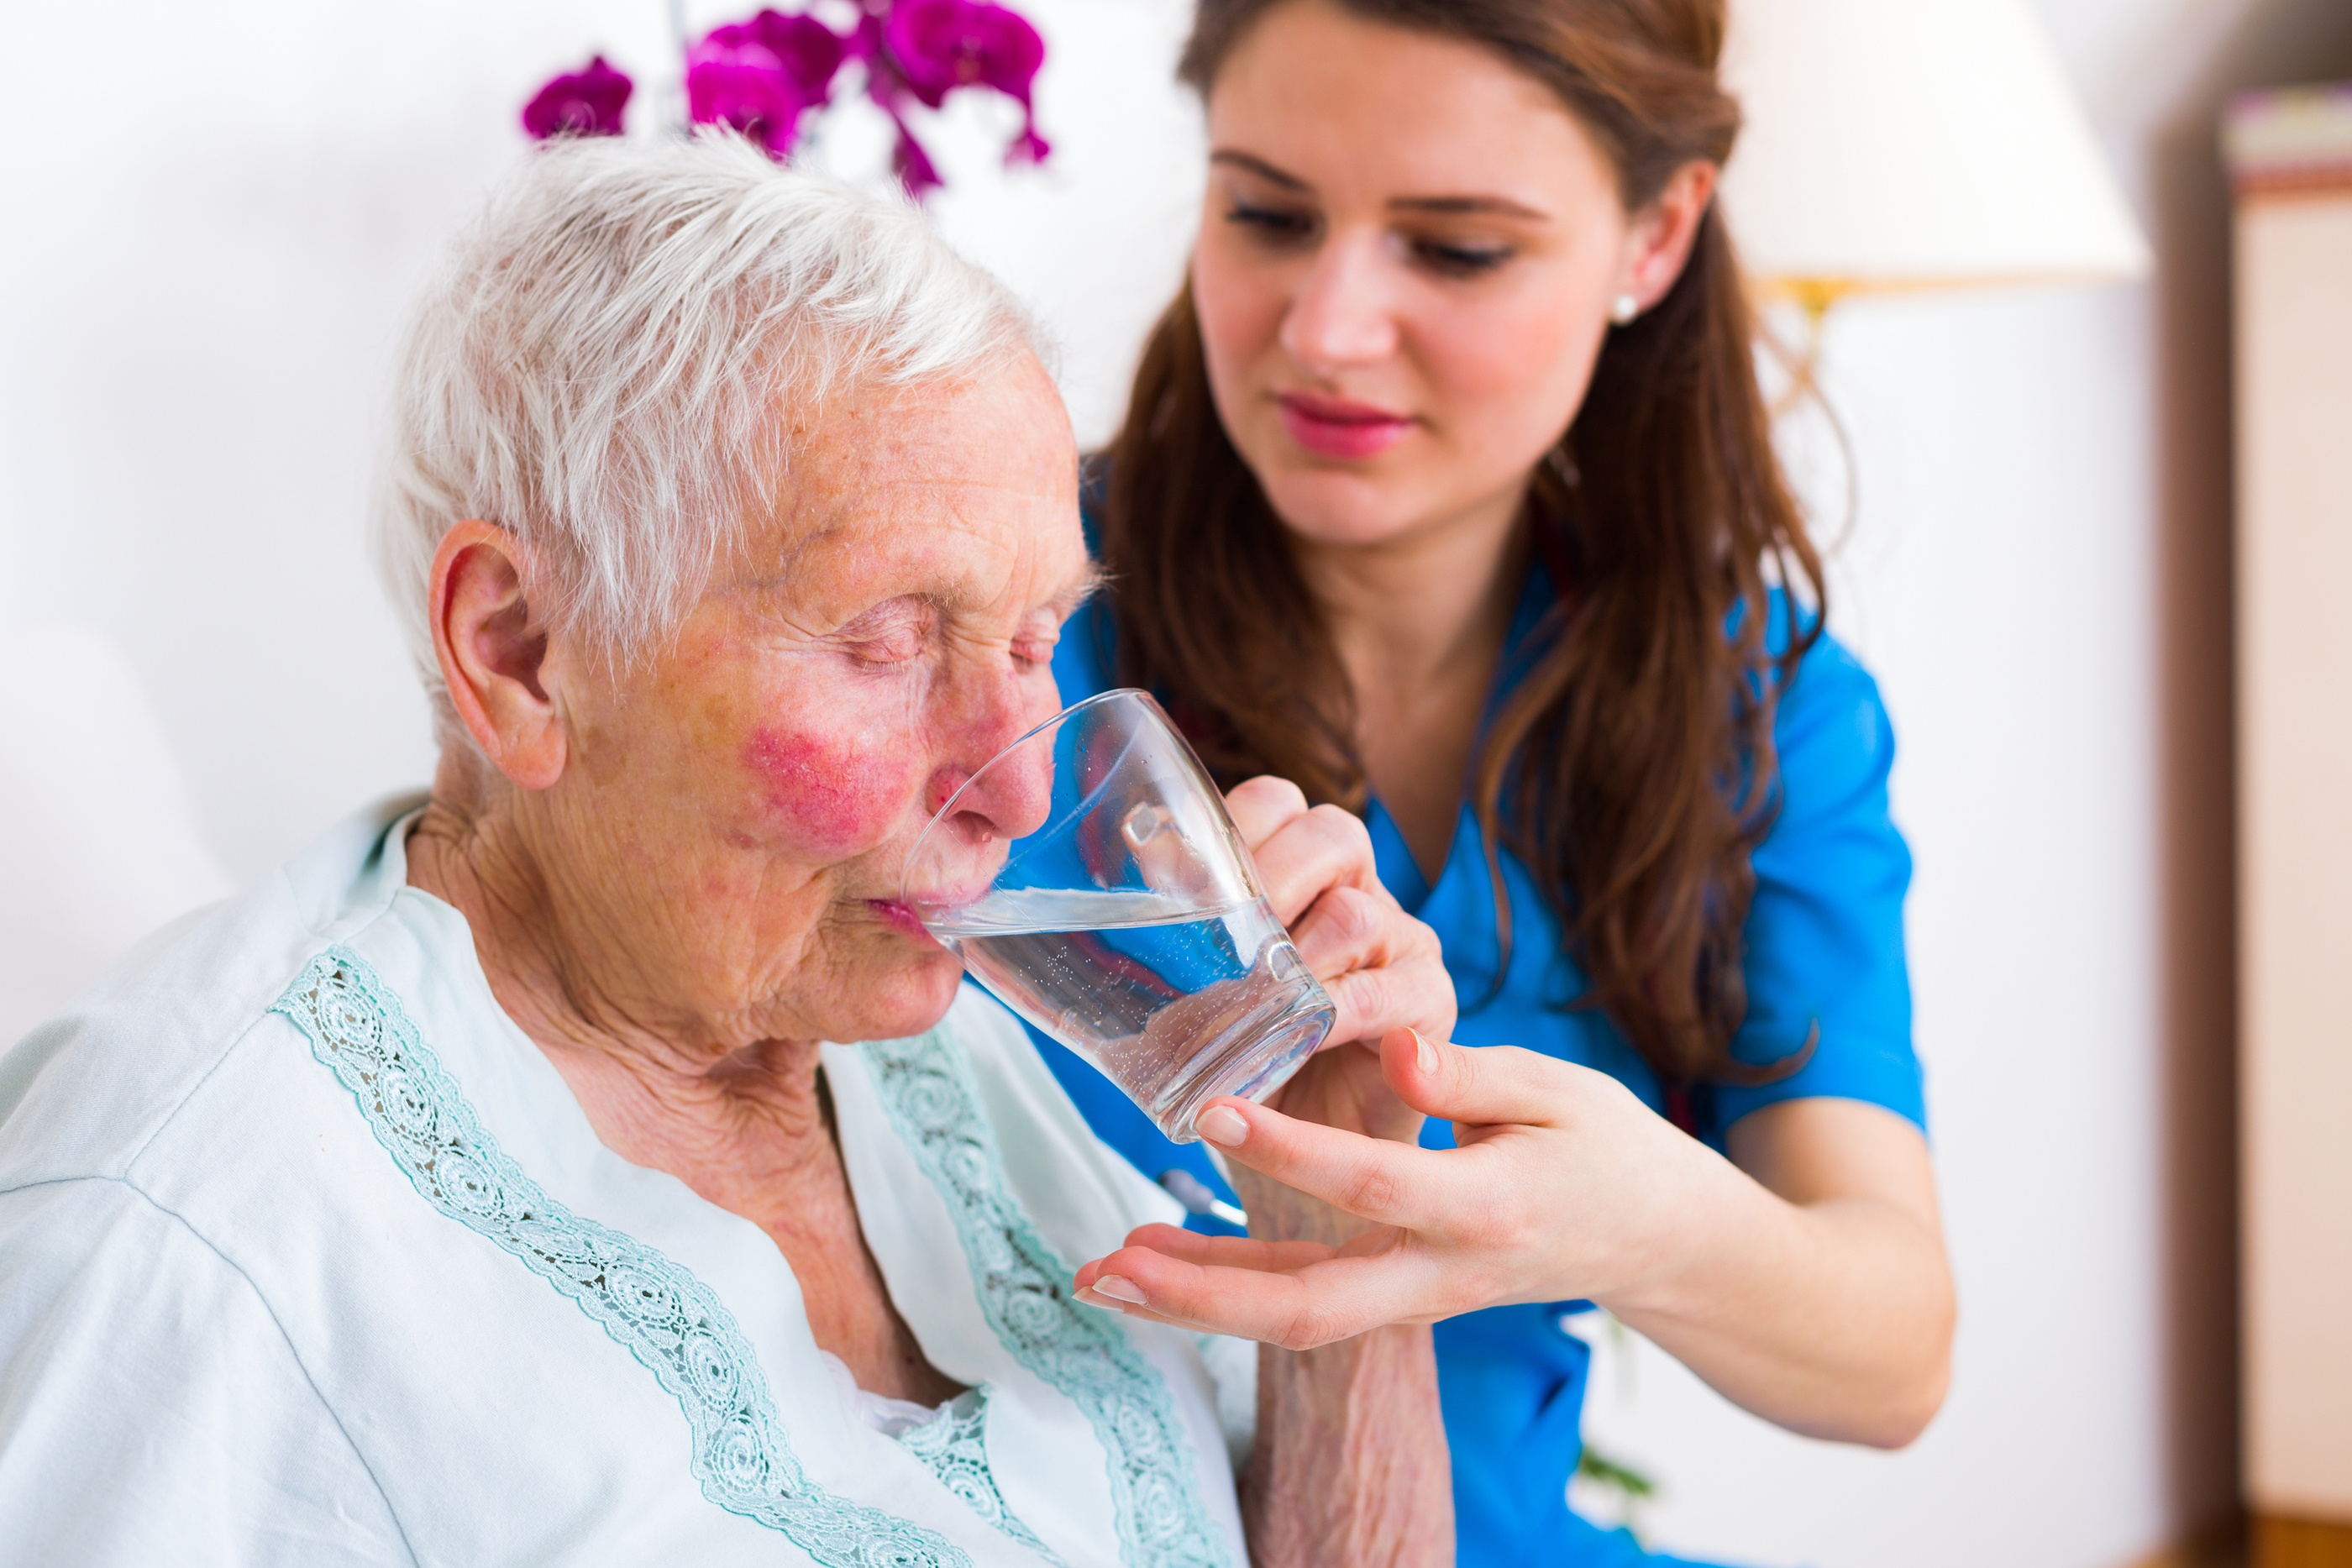 bigstock-Caring-For-Those-In-Need-164458058